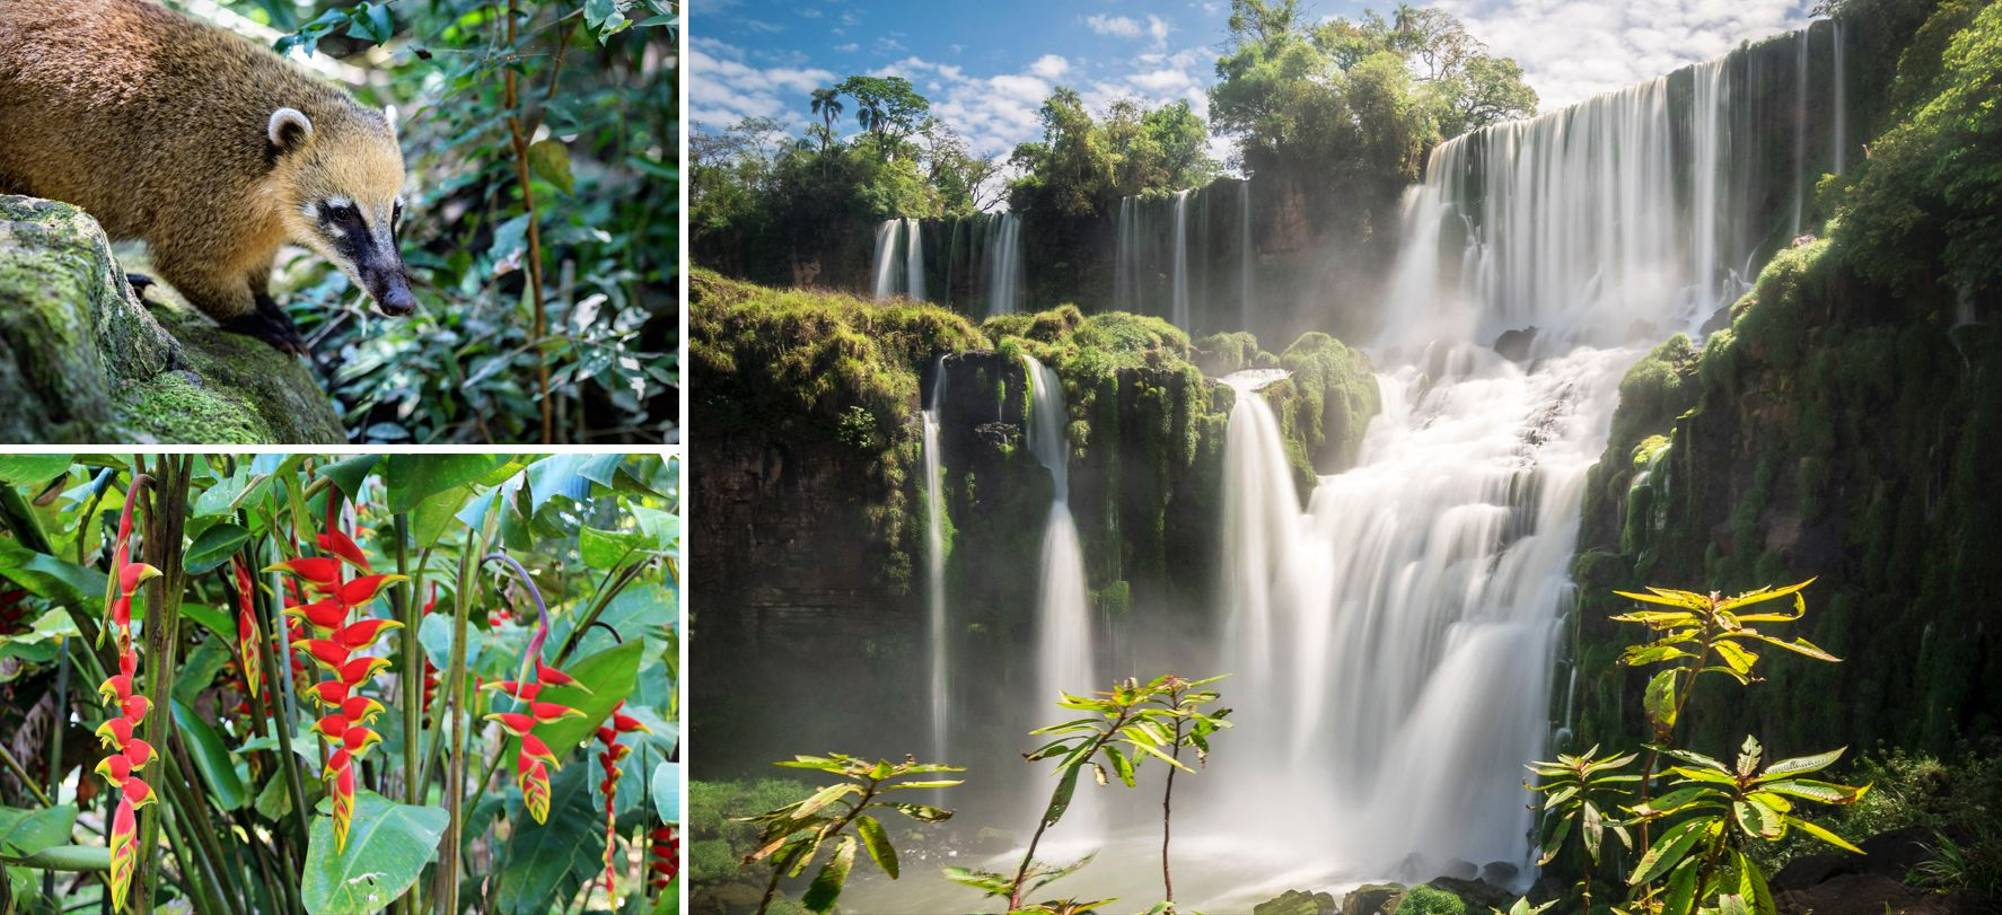 22 Day - Iguazu Falls - Hotel stay - Itinerary Desktop  Copy.jpg